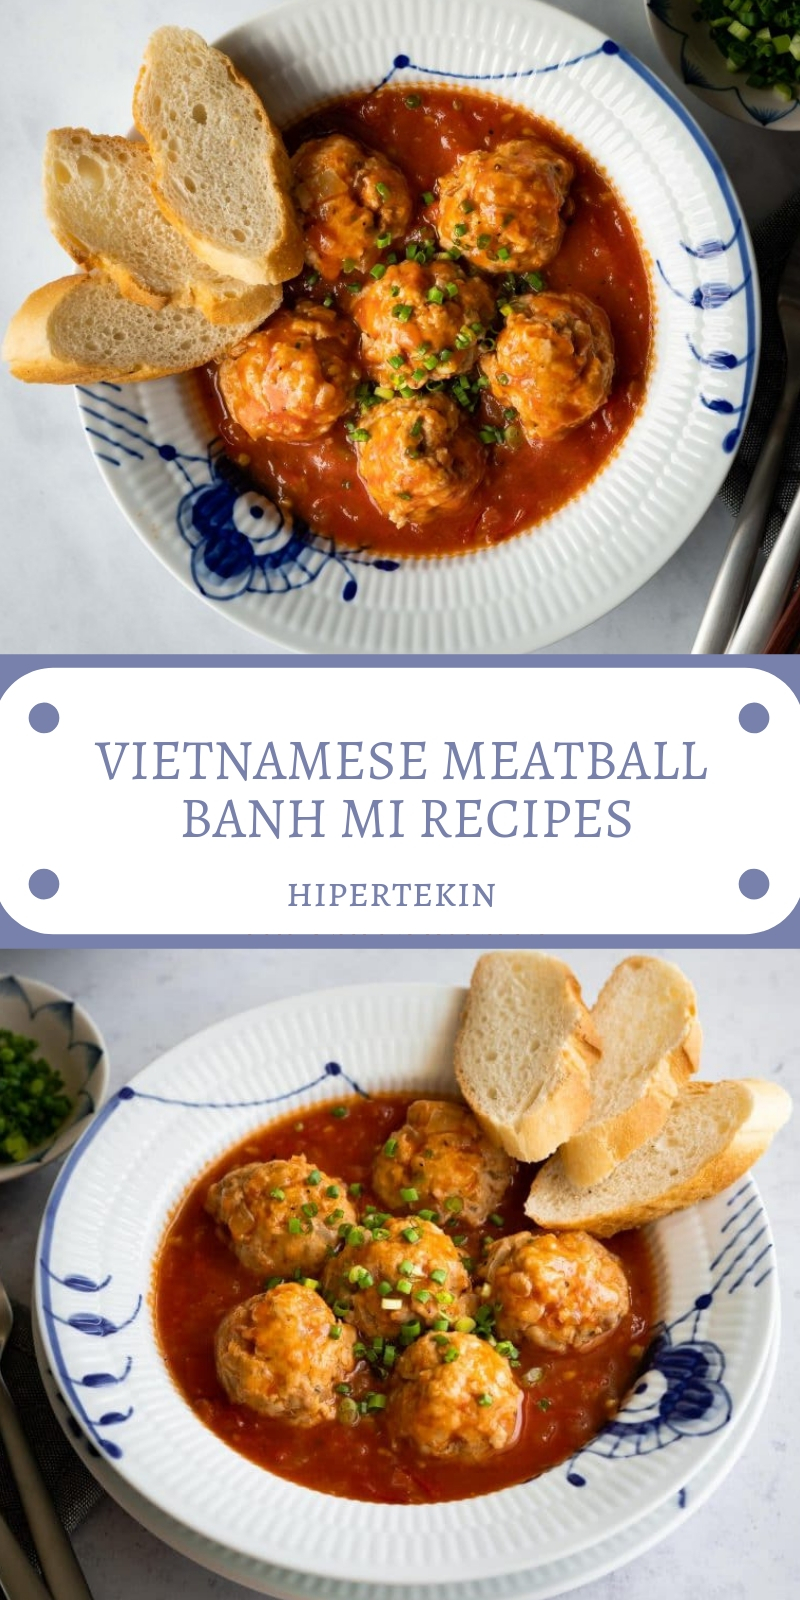 VIETNAMESE MEATBALL BANH MI RECIPES